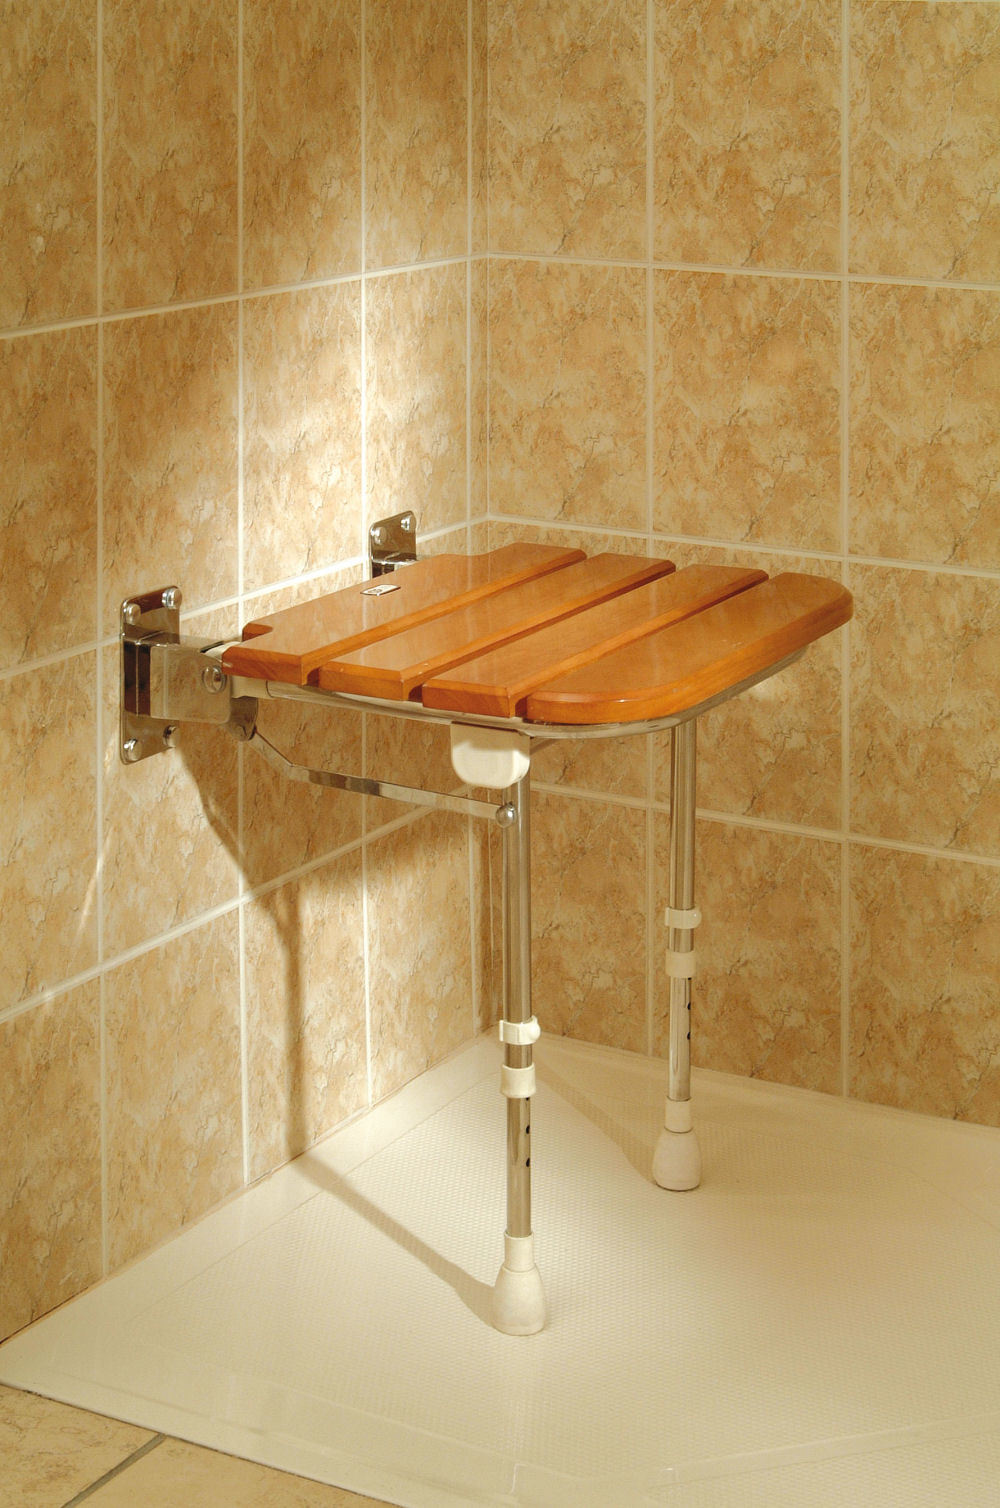 Fold Up Wooden Slatted Seat With Legs - Shower Seats (Wall Mounted ...